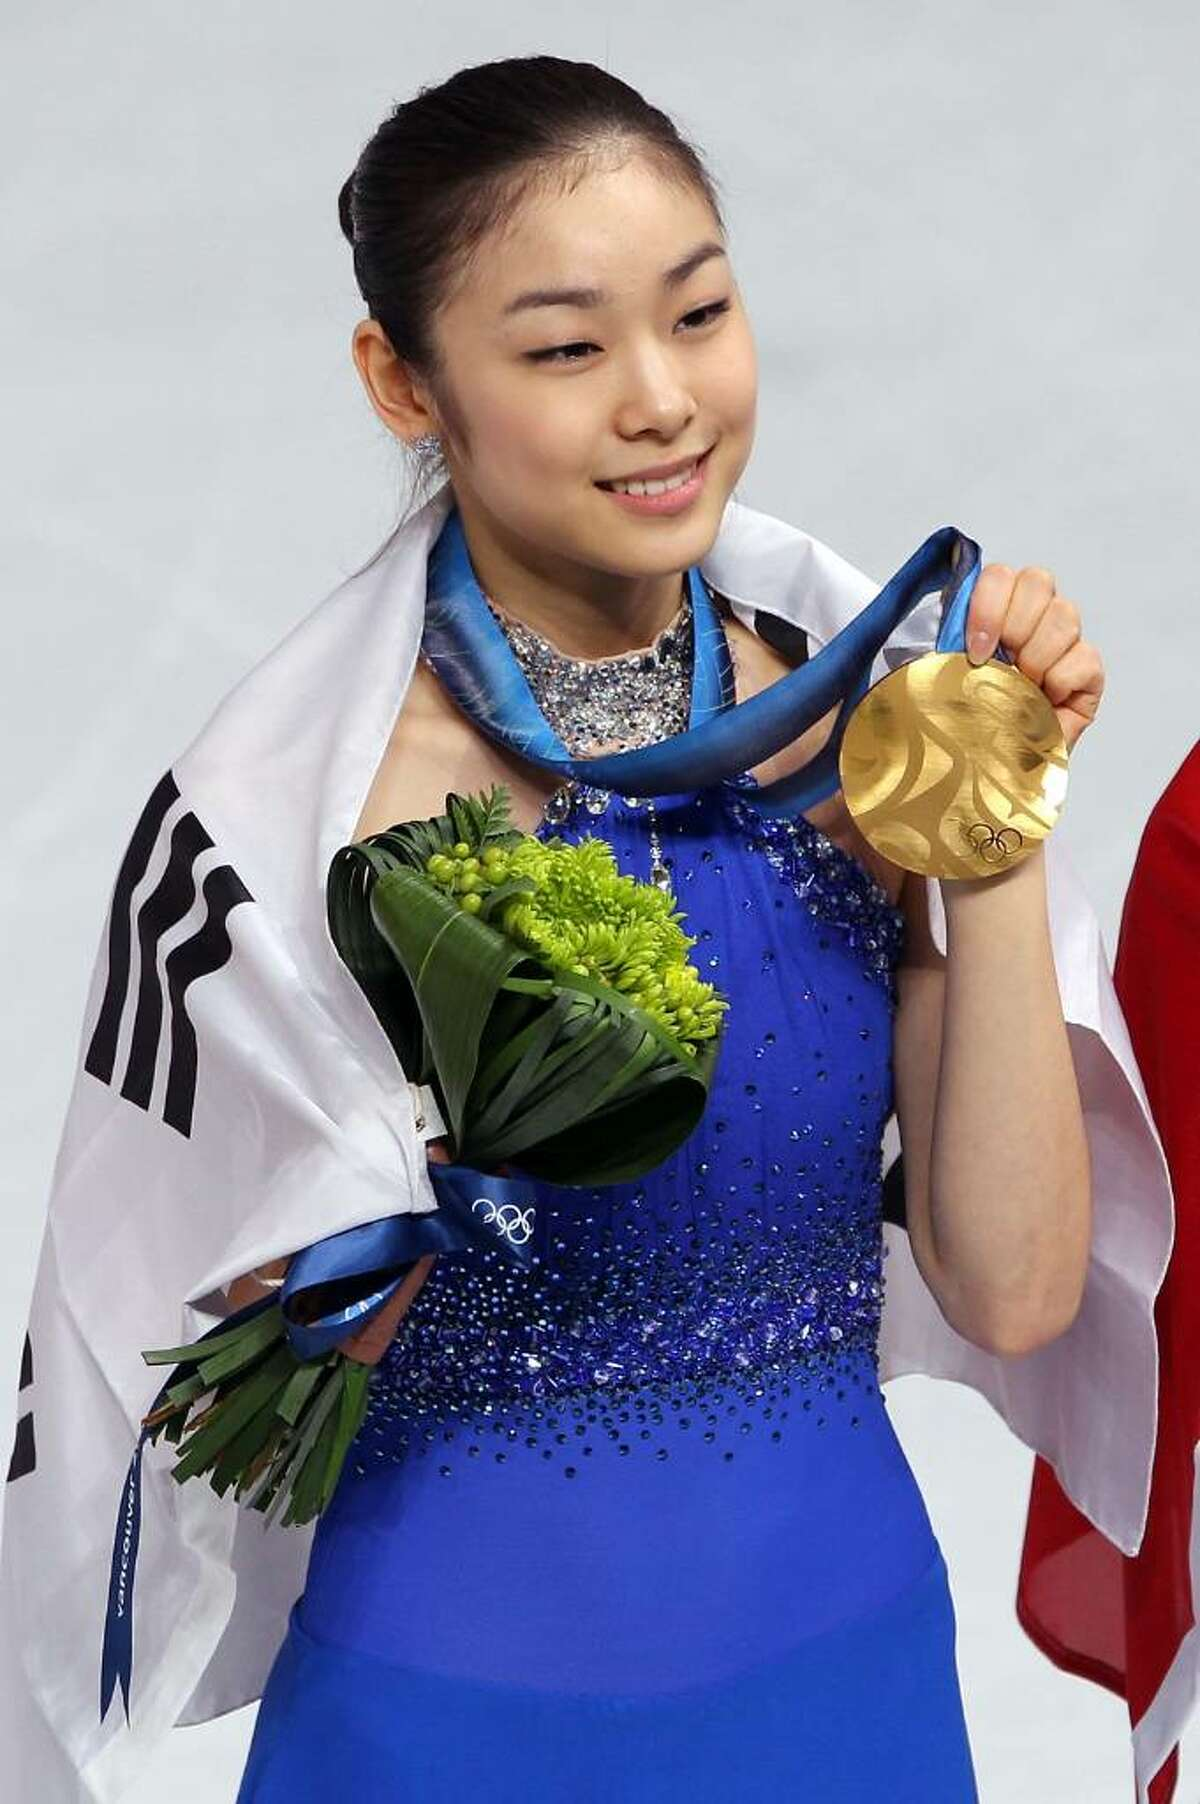 VANCOUVER, BC - FEBRUARY 25: Kim Yu-Na of South Korea celebrates winning the gold medal in the Ladies Free Skating during the medal ceremony on day 14 of the 2010 Vancouver Winter Olympics at Pacific Coliseum on February 25, 2010 in Vancouver, Canada. (Photo by Matthew Stockman/Getty Images) *** Local Caption *** Kim Yu-Na